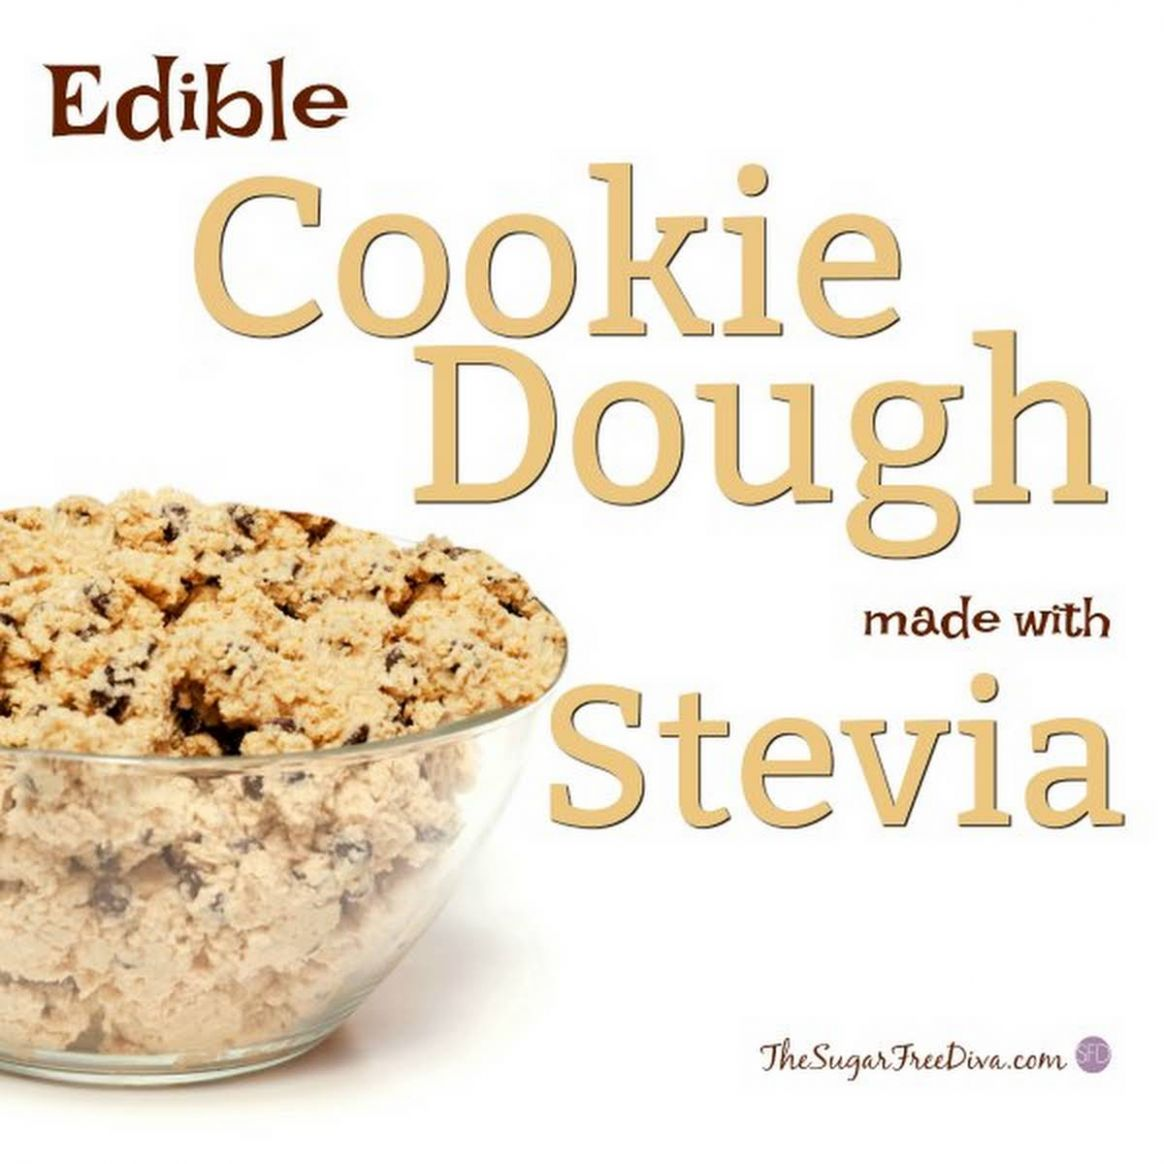 How to make Edible Cookie dough with Stevia - Dessert Recipes Made With Stevia